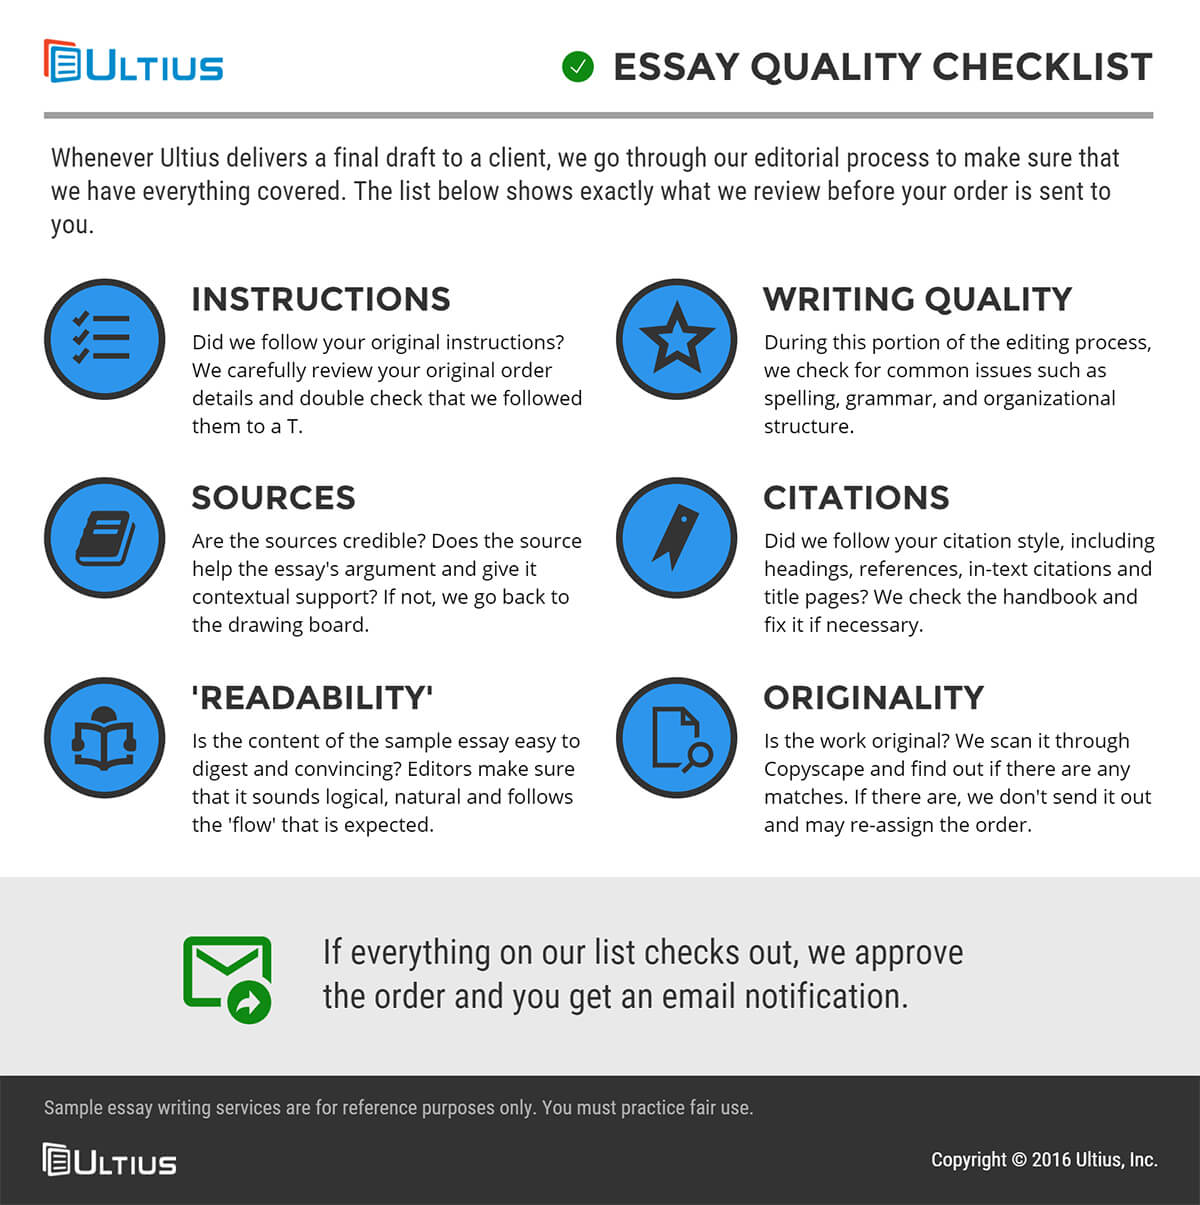 persuasive essay on working out My first day at school essay 200 words dissertations online usa scholar research papers websites do colleges read your essay photo essay about same sex marriage in.